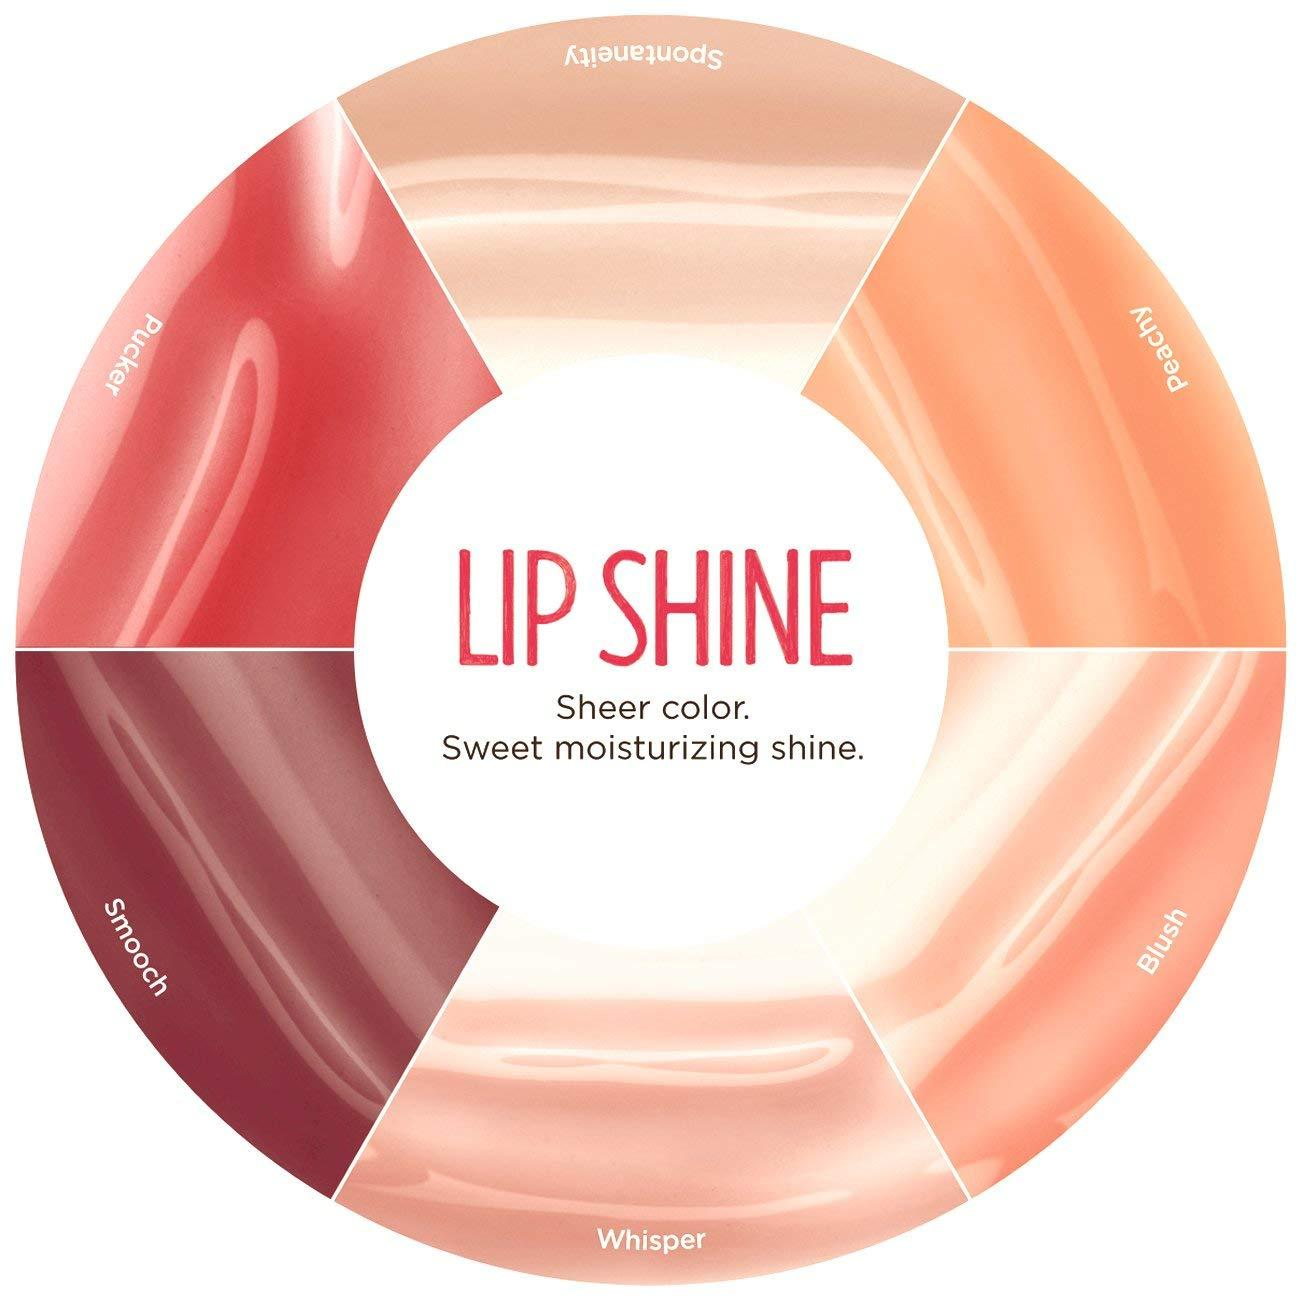 Burt's Bees 100% Natural Moisturizing Lip Shine, Peachy, 0.5 Ounce (1 Count)